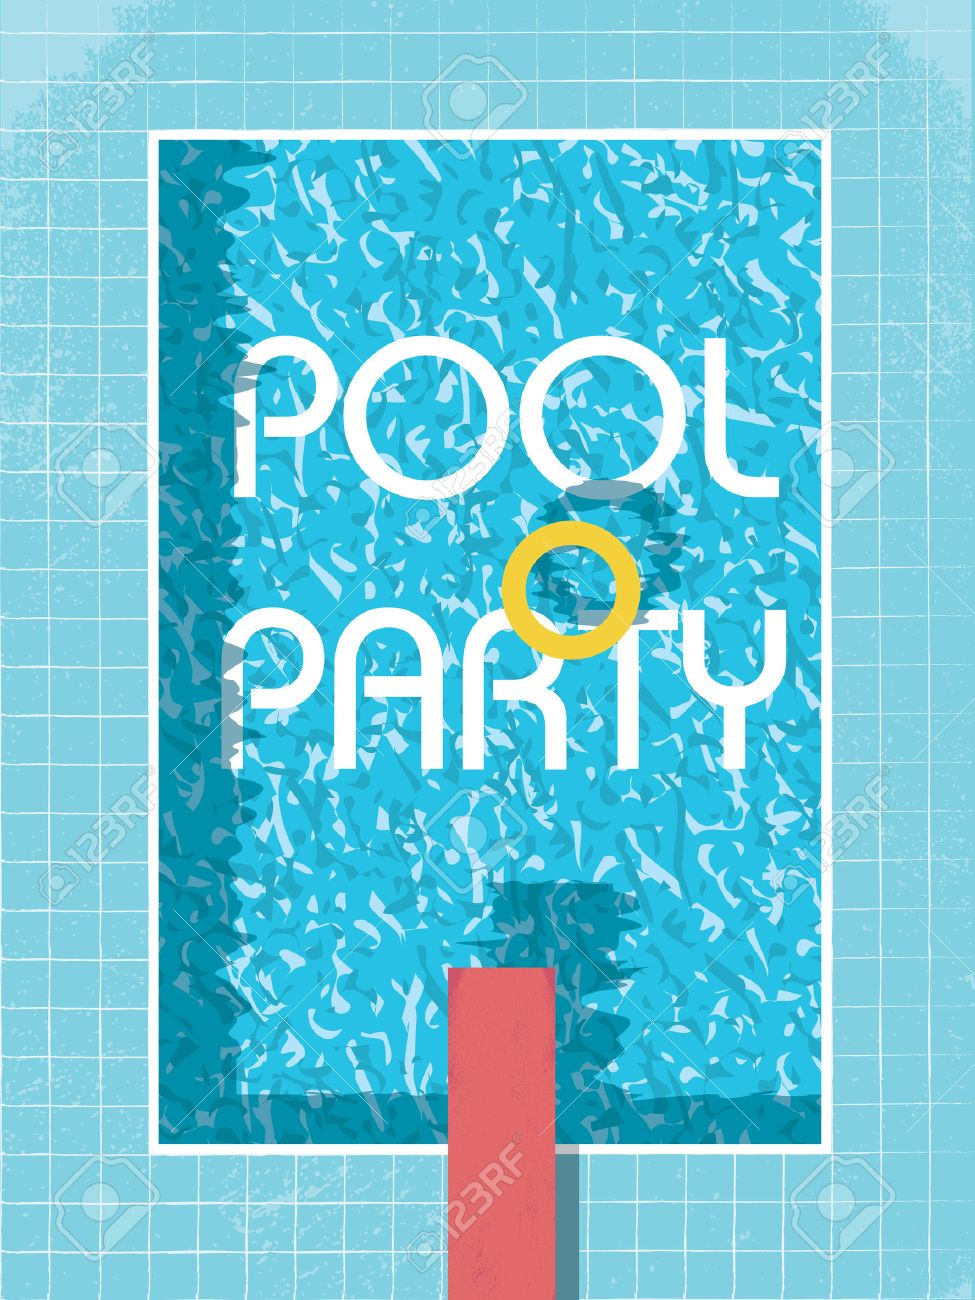 Pool party invitation poster flyer or leaflet template retro pool party invitation poster flyer or leaflet template retro style swimming pool with life monicamarmolfo Gallery